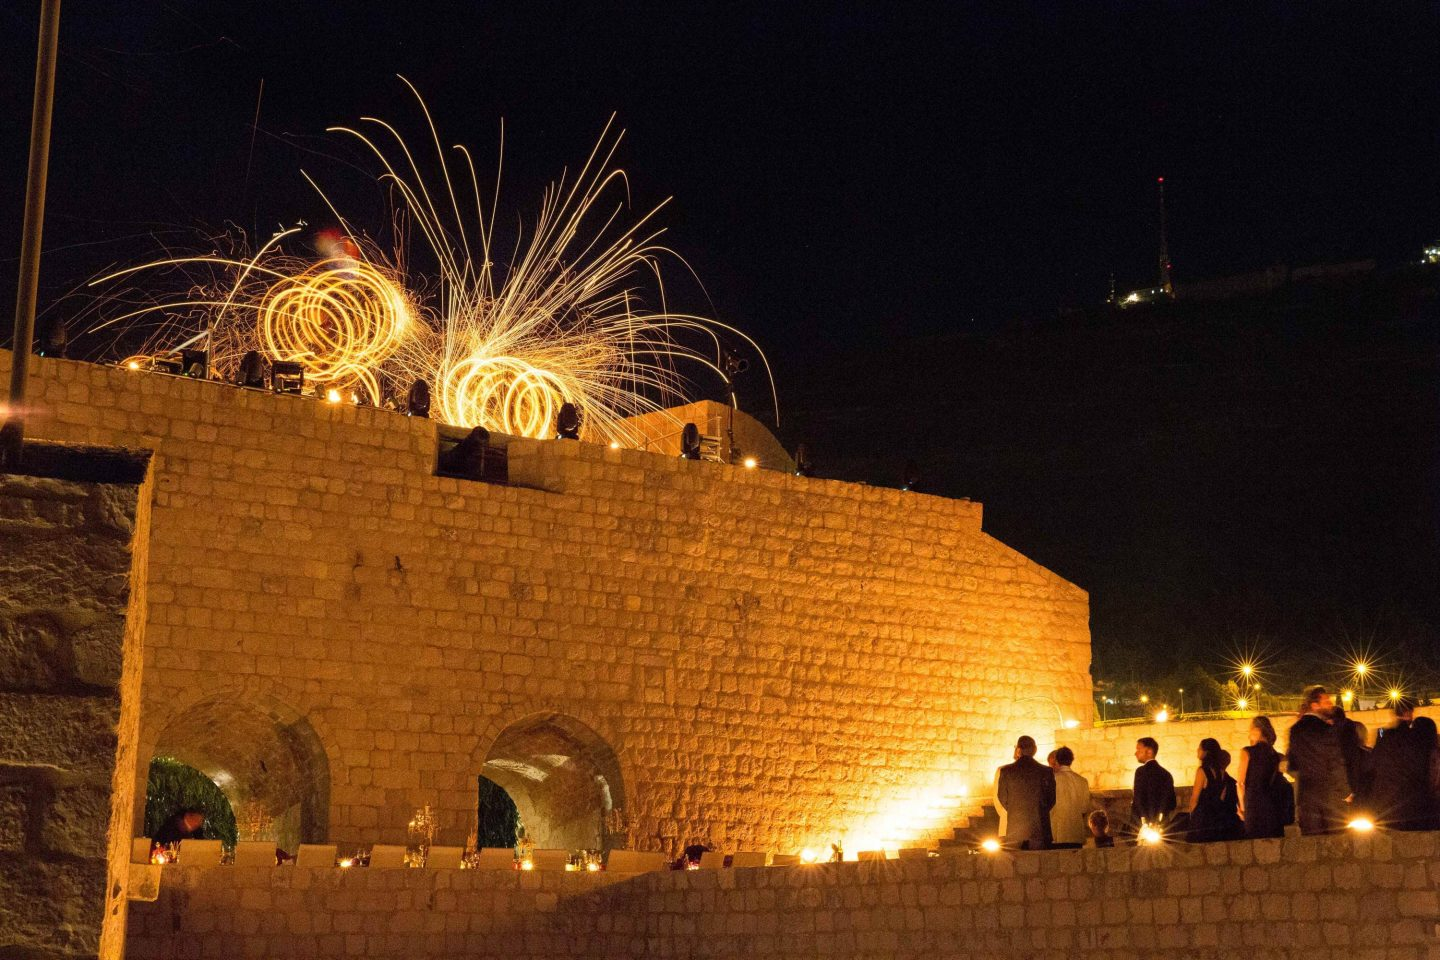 Fireworks during evening dinner at Fort Lovrijenac at this Dubrovnik wedding in Croatia | Photo by Robert Fairer